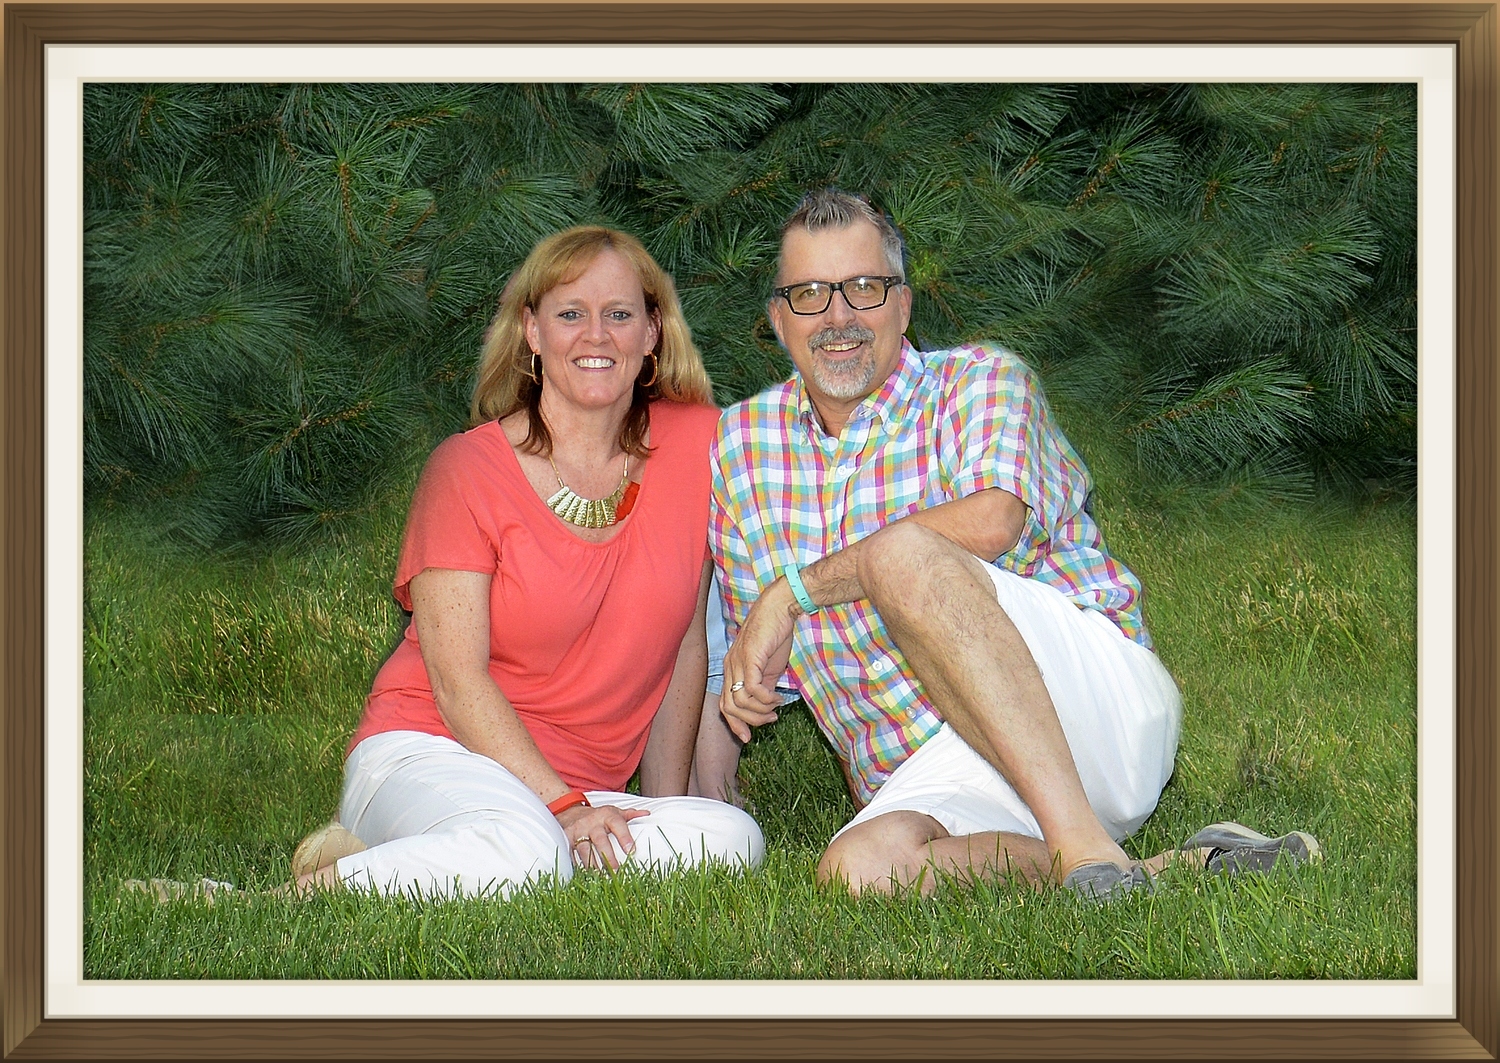 Chris and Lisa (husband/wife) own & operate SS framing & Photography located in beautiful Pawleys Island.